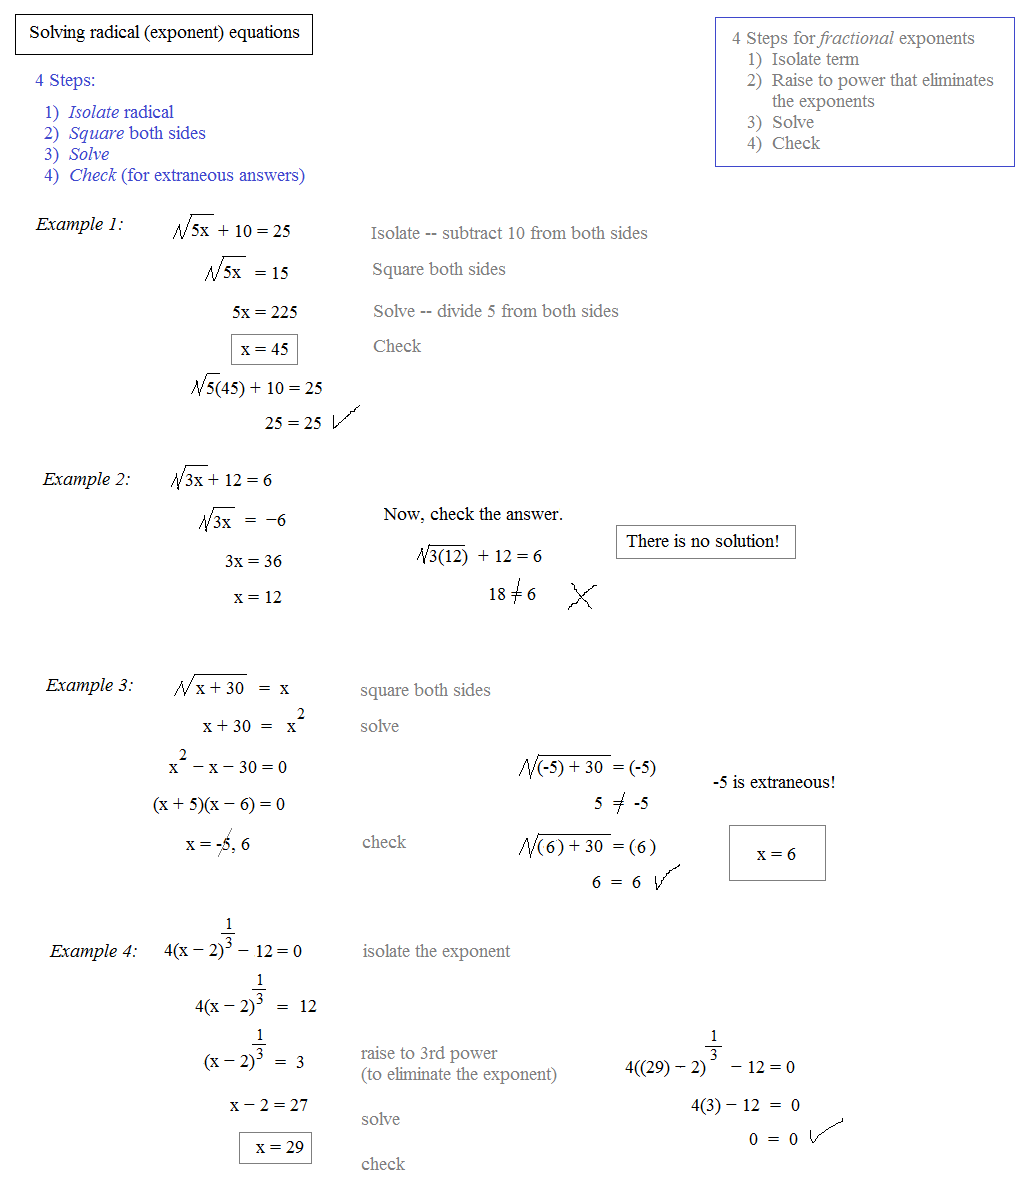 worksheet Worksheet Solving Exponential Equations math plane rational exponents and radical equations solving exponent notes